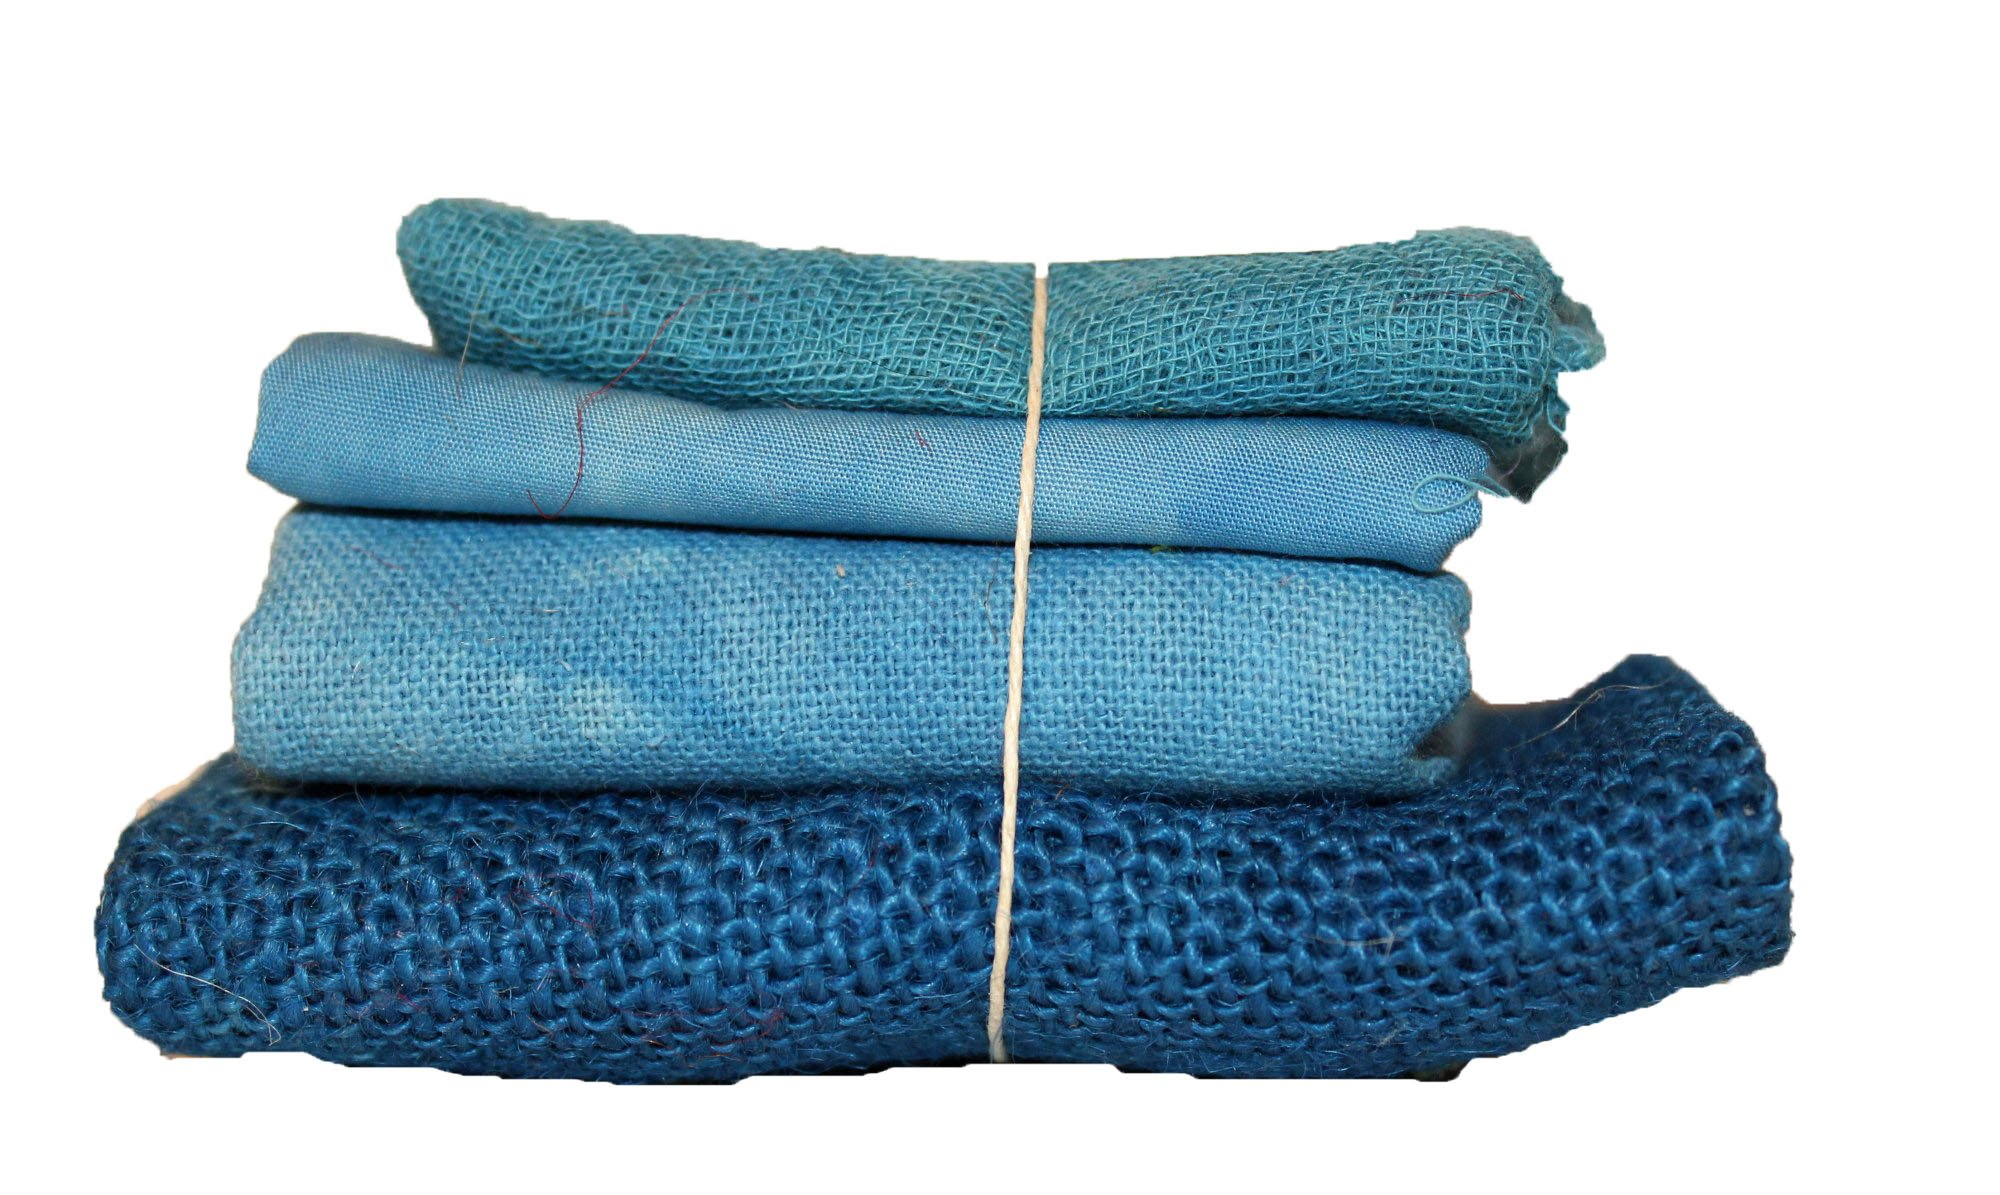 Ocean Blue Bindle - Cheesecloth, Cotton, Osnaburg, & Burlap